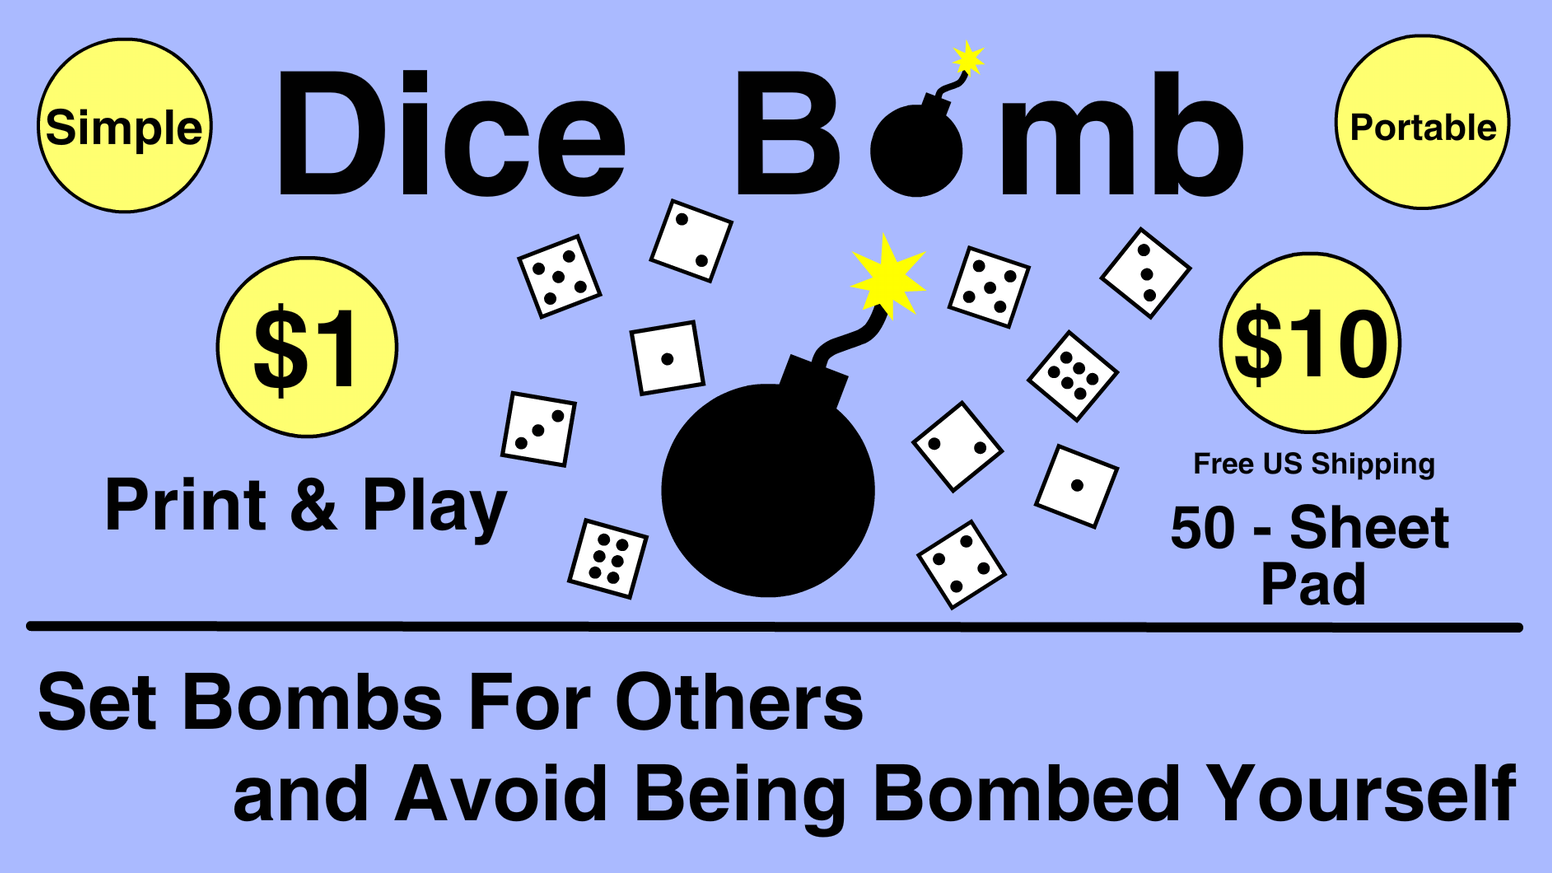 A quick 2+ player game where you set bombs for others, while avoiding being bombed yourself